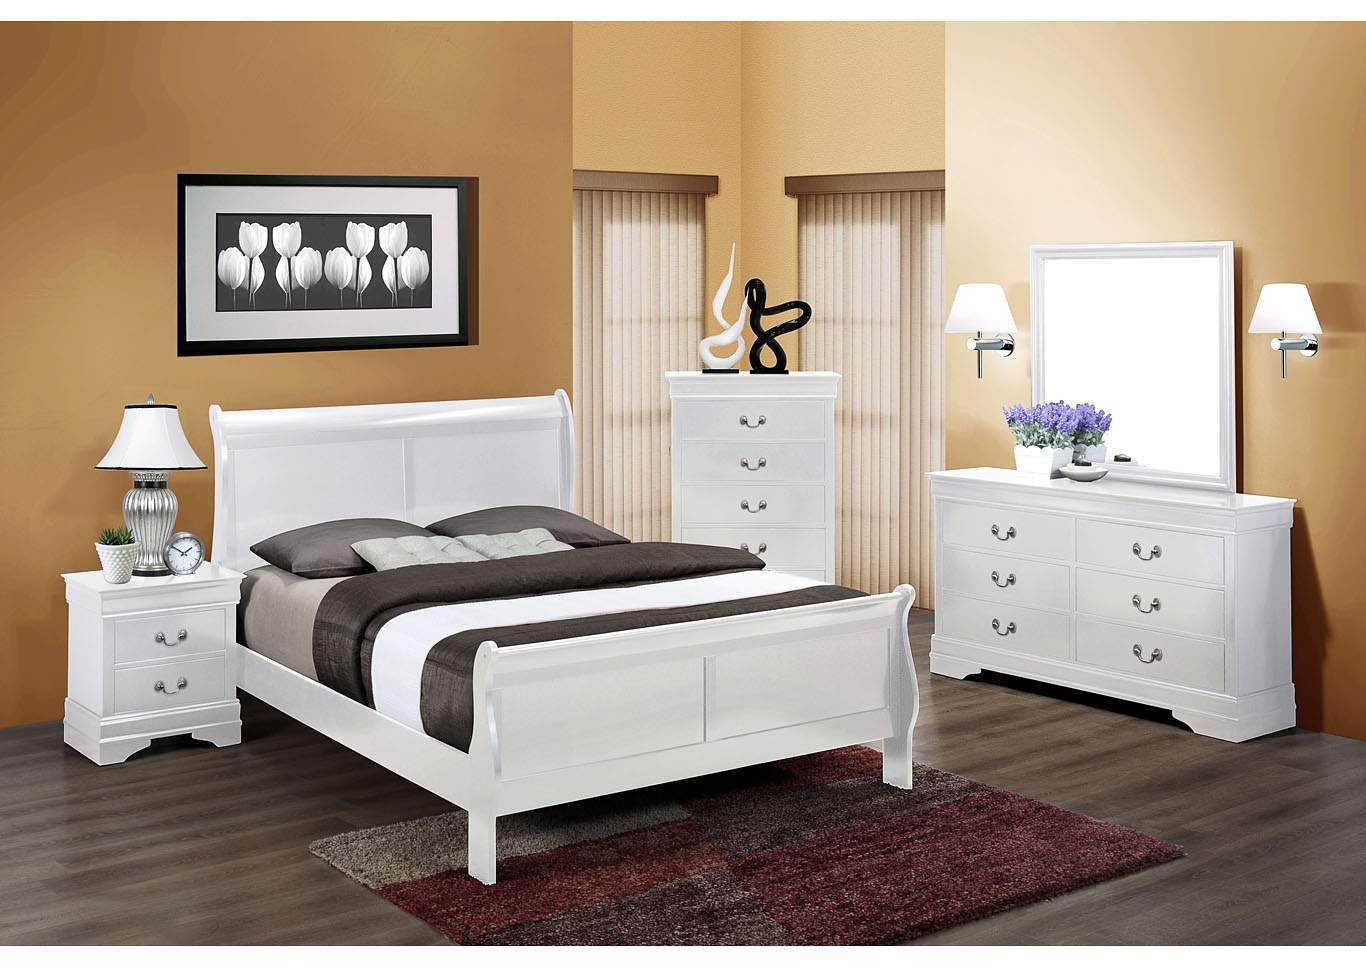 Louis Philip White King Sleigh Bed w/6 Drawer Dresser, Mirror and Nightstand,Crown Mark